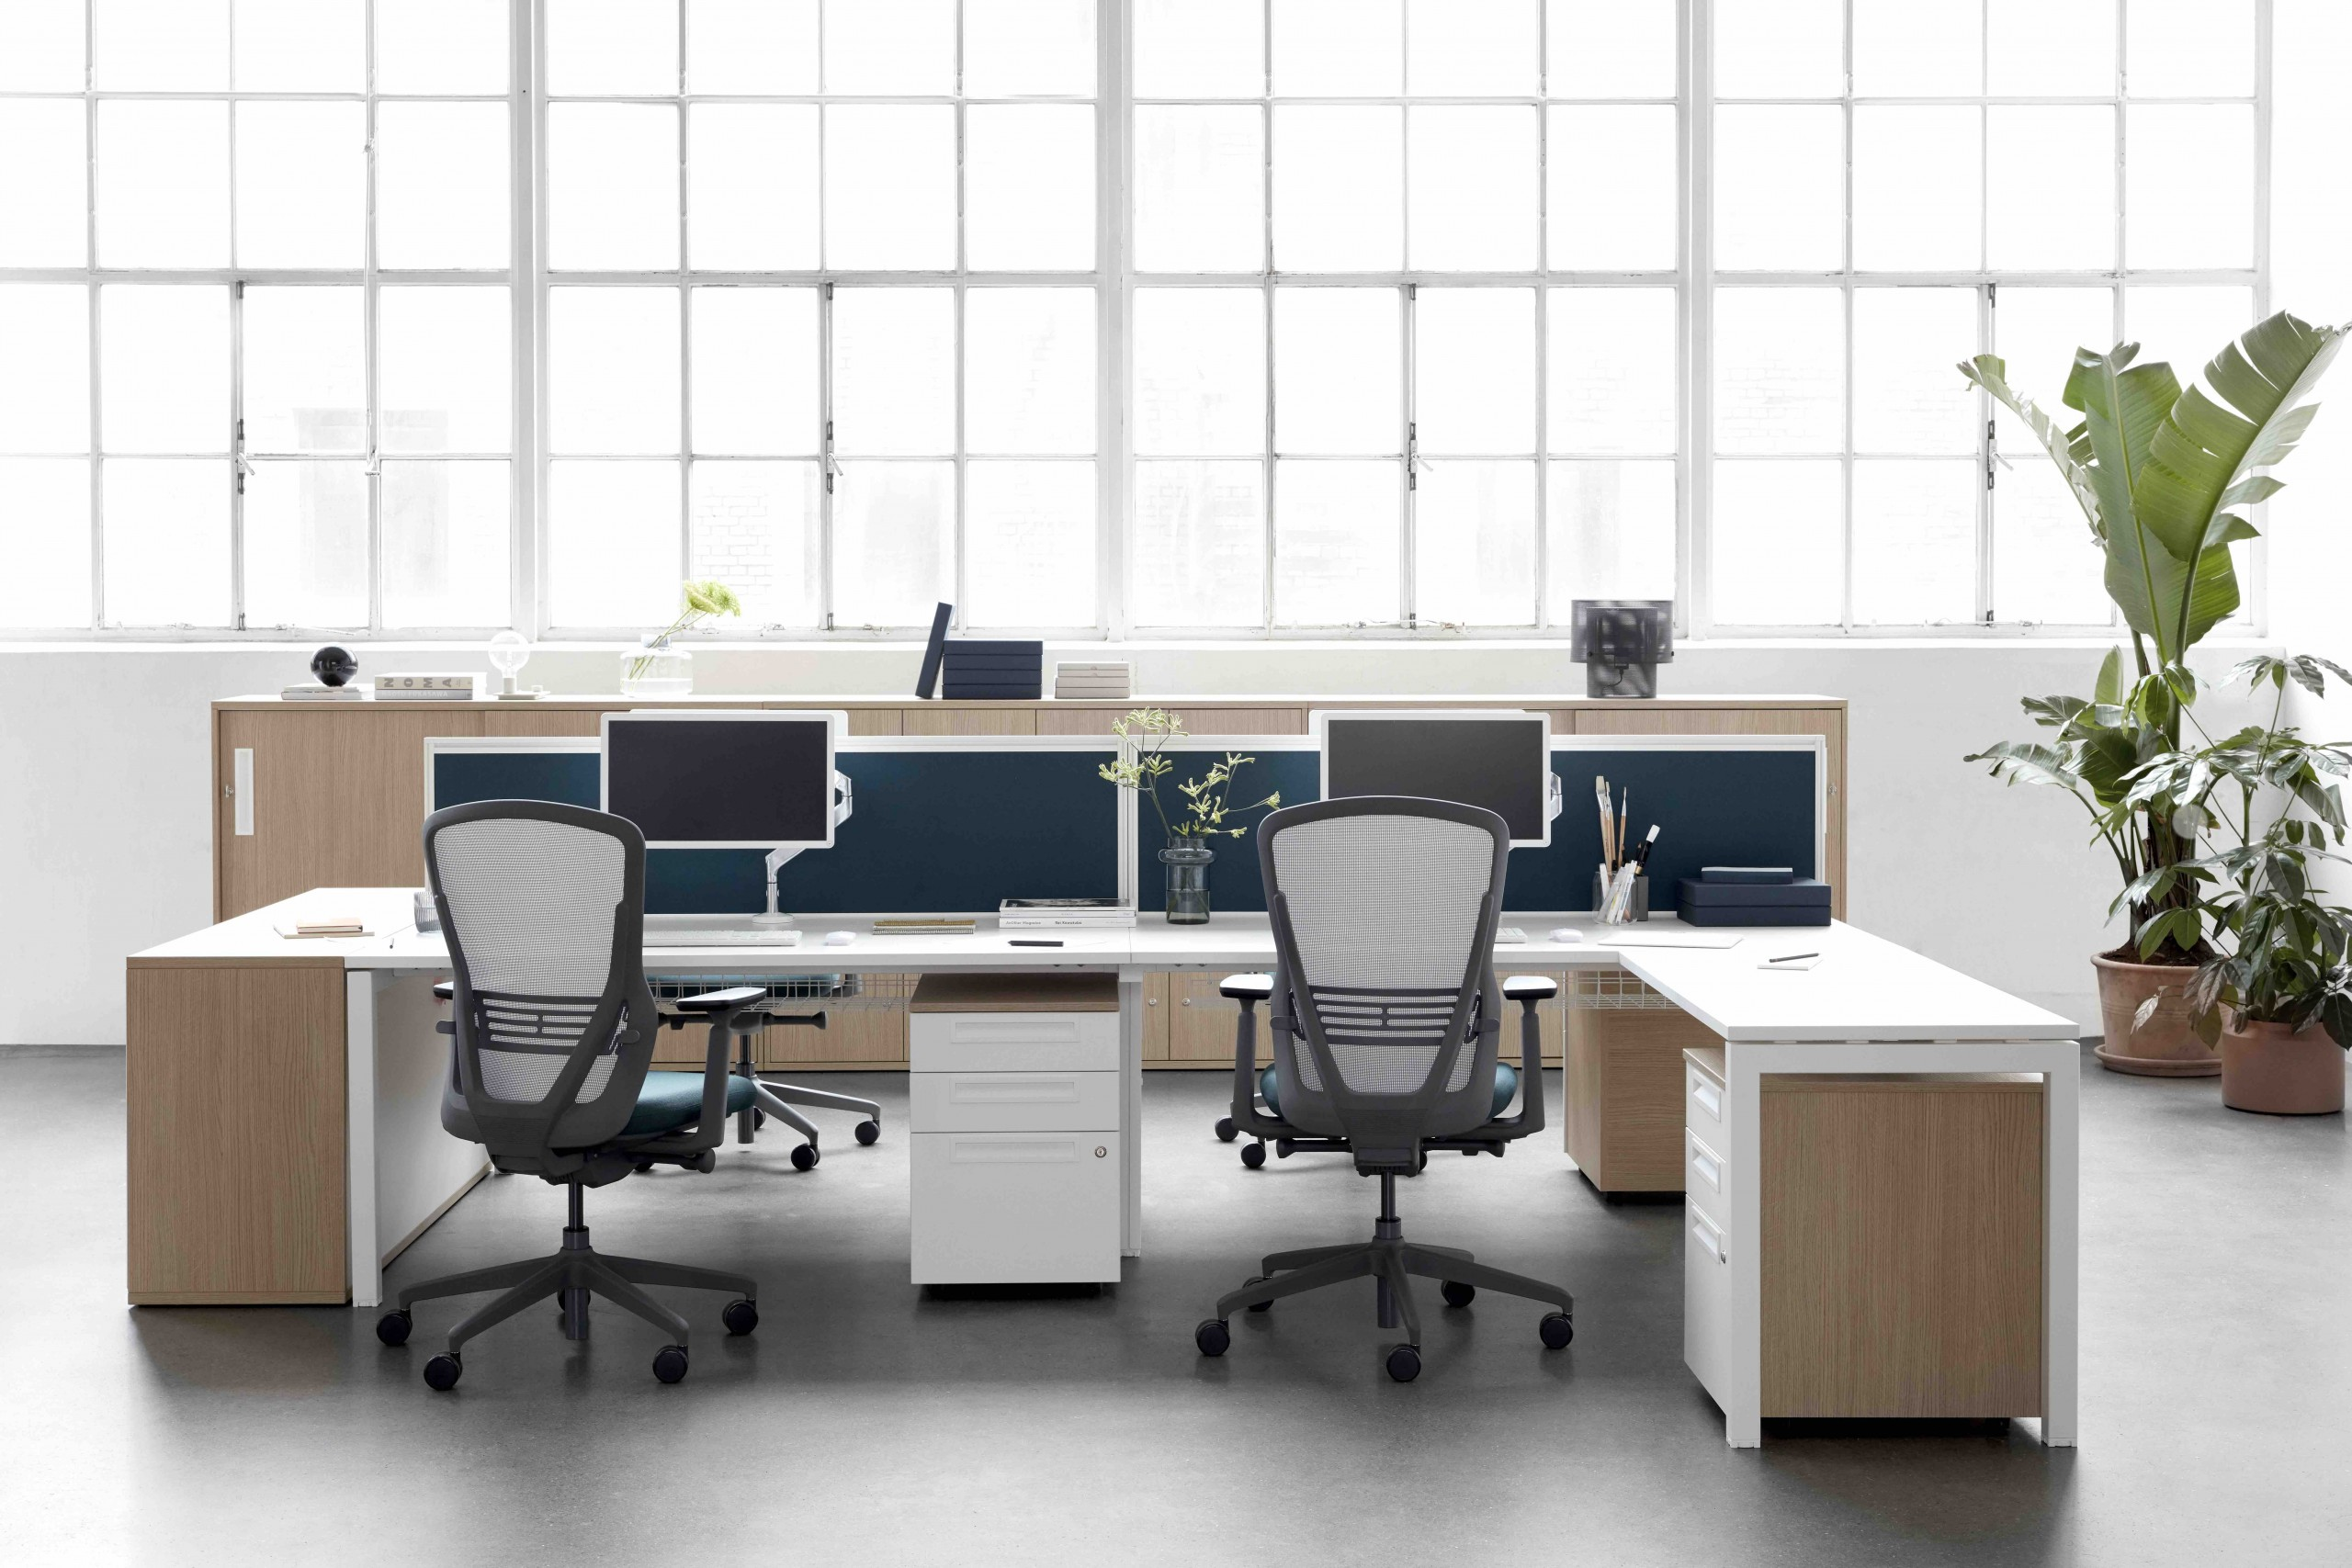 Senator Group Office | Huddle Furniture